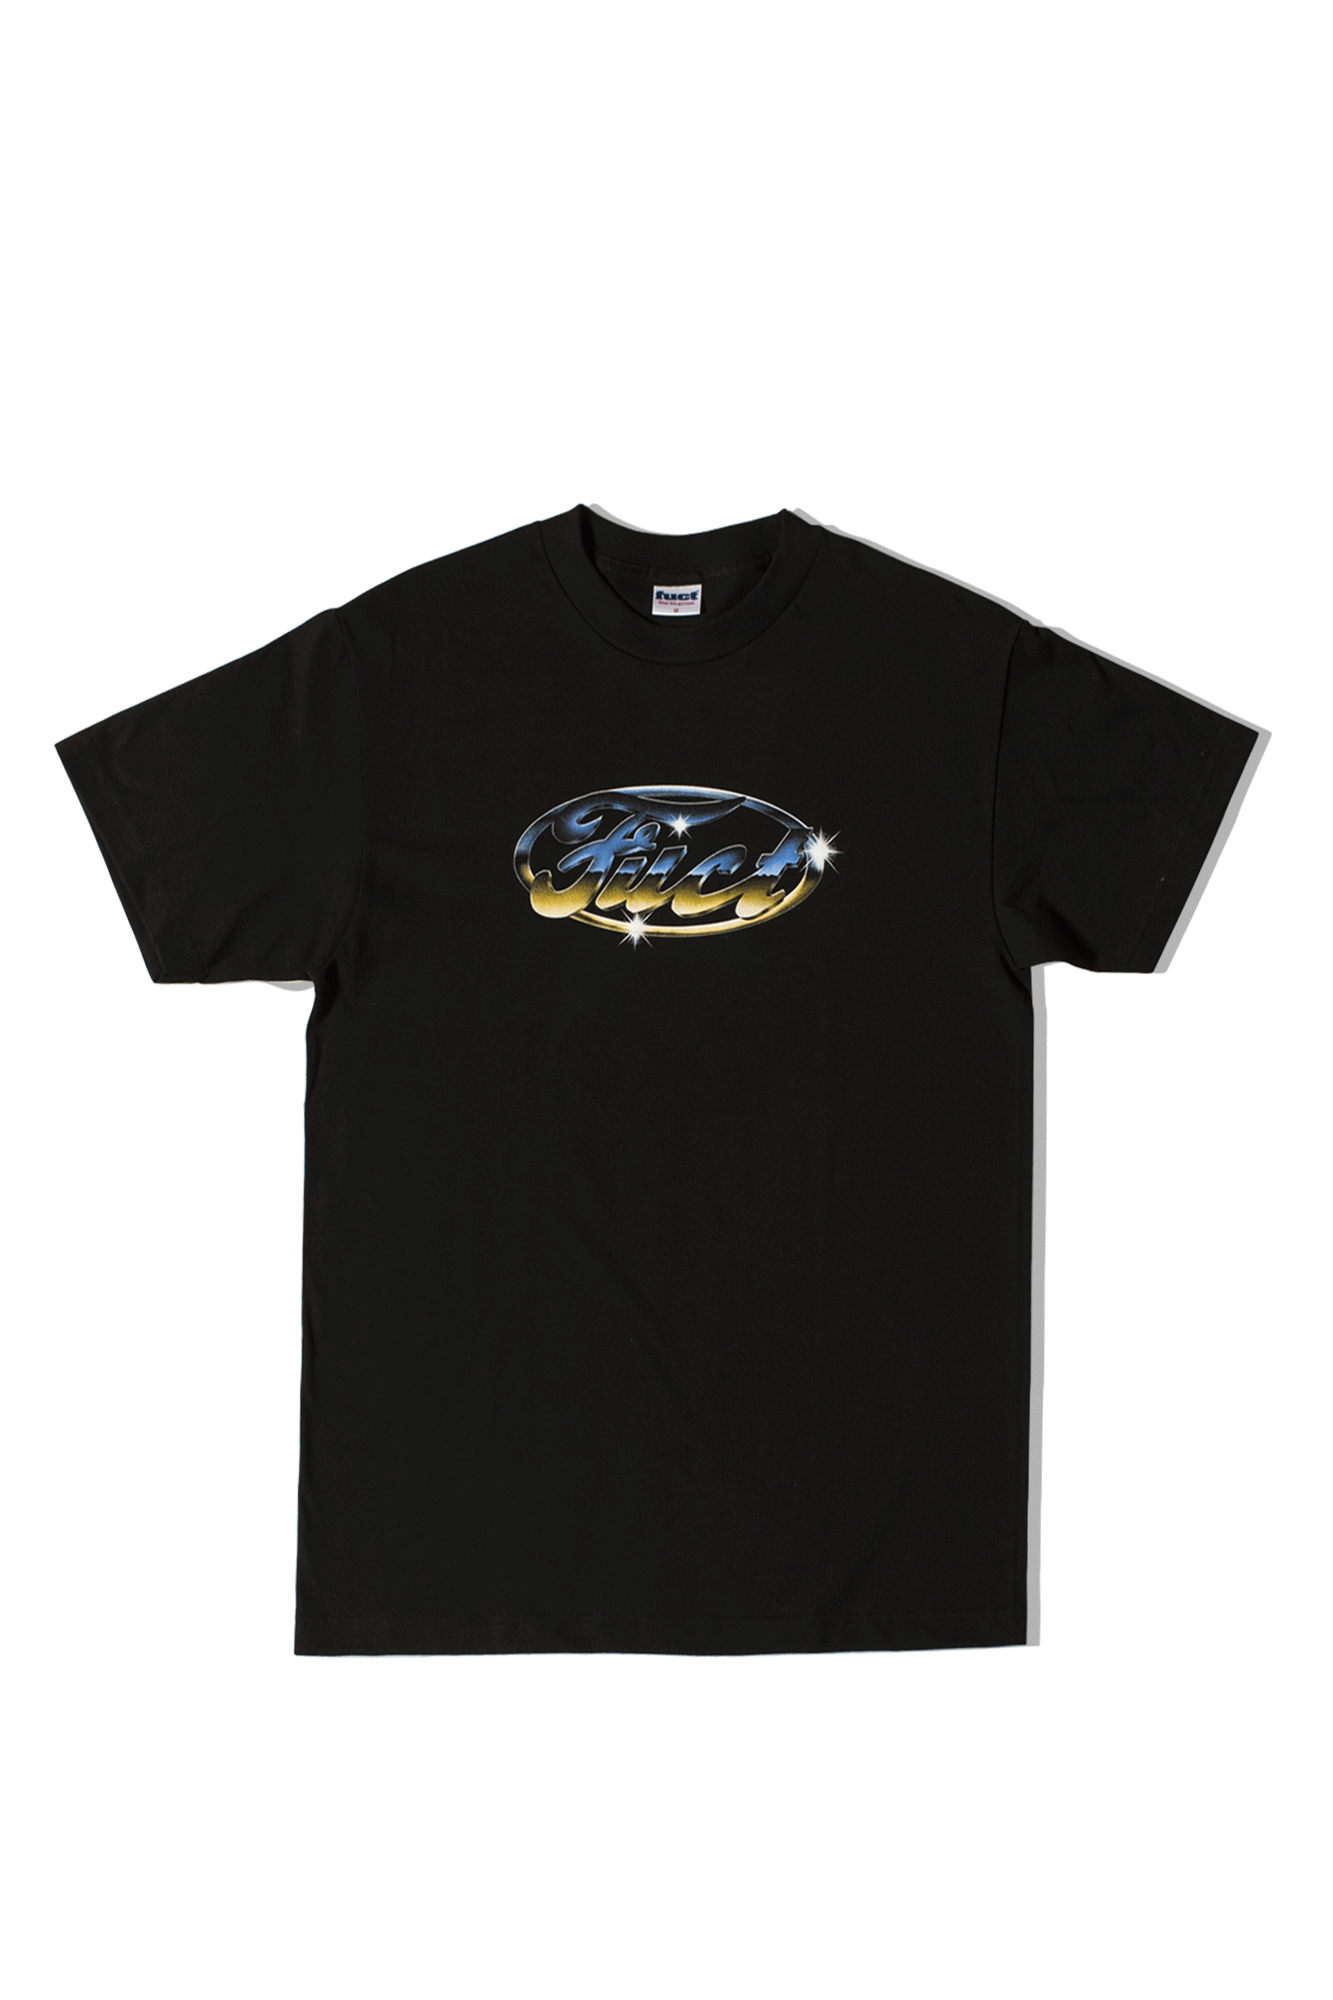 CHROME T-SHIRT Black